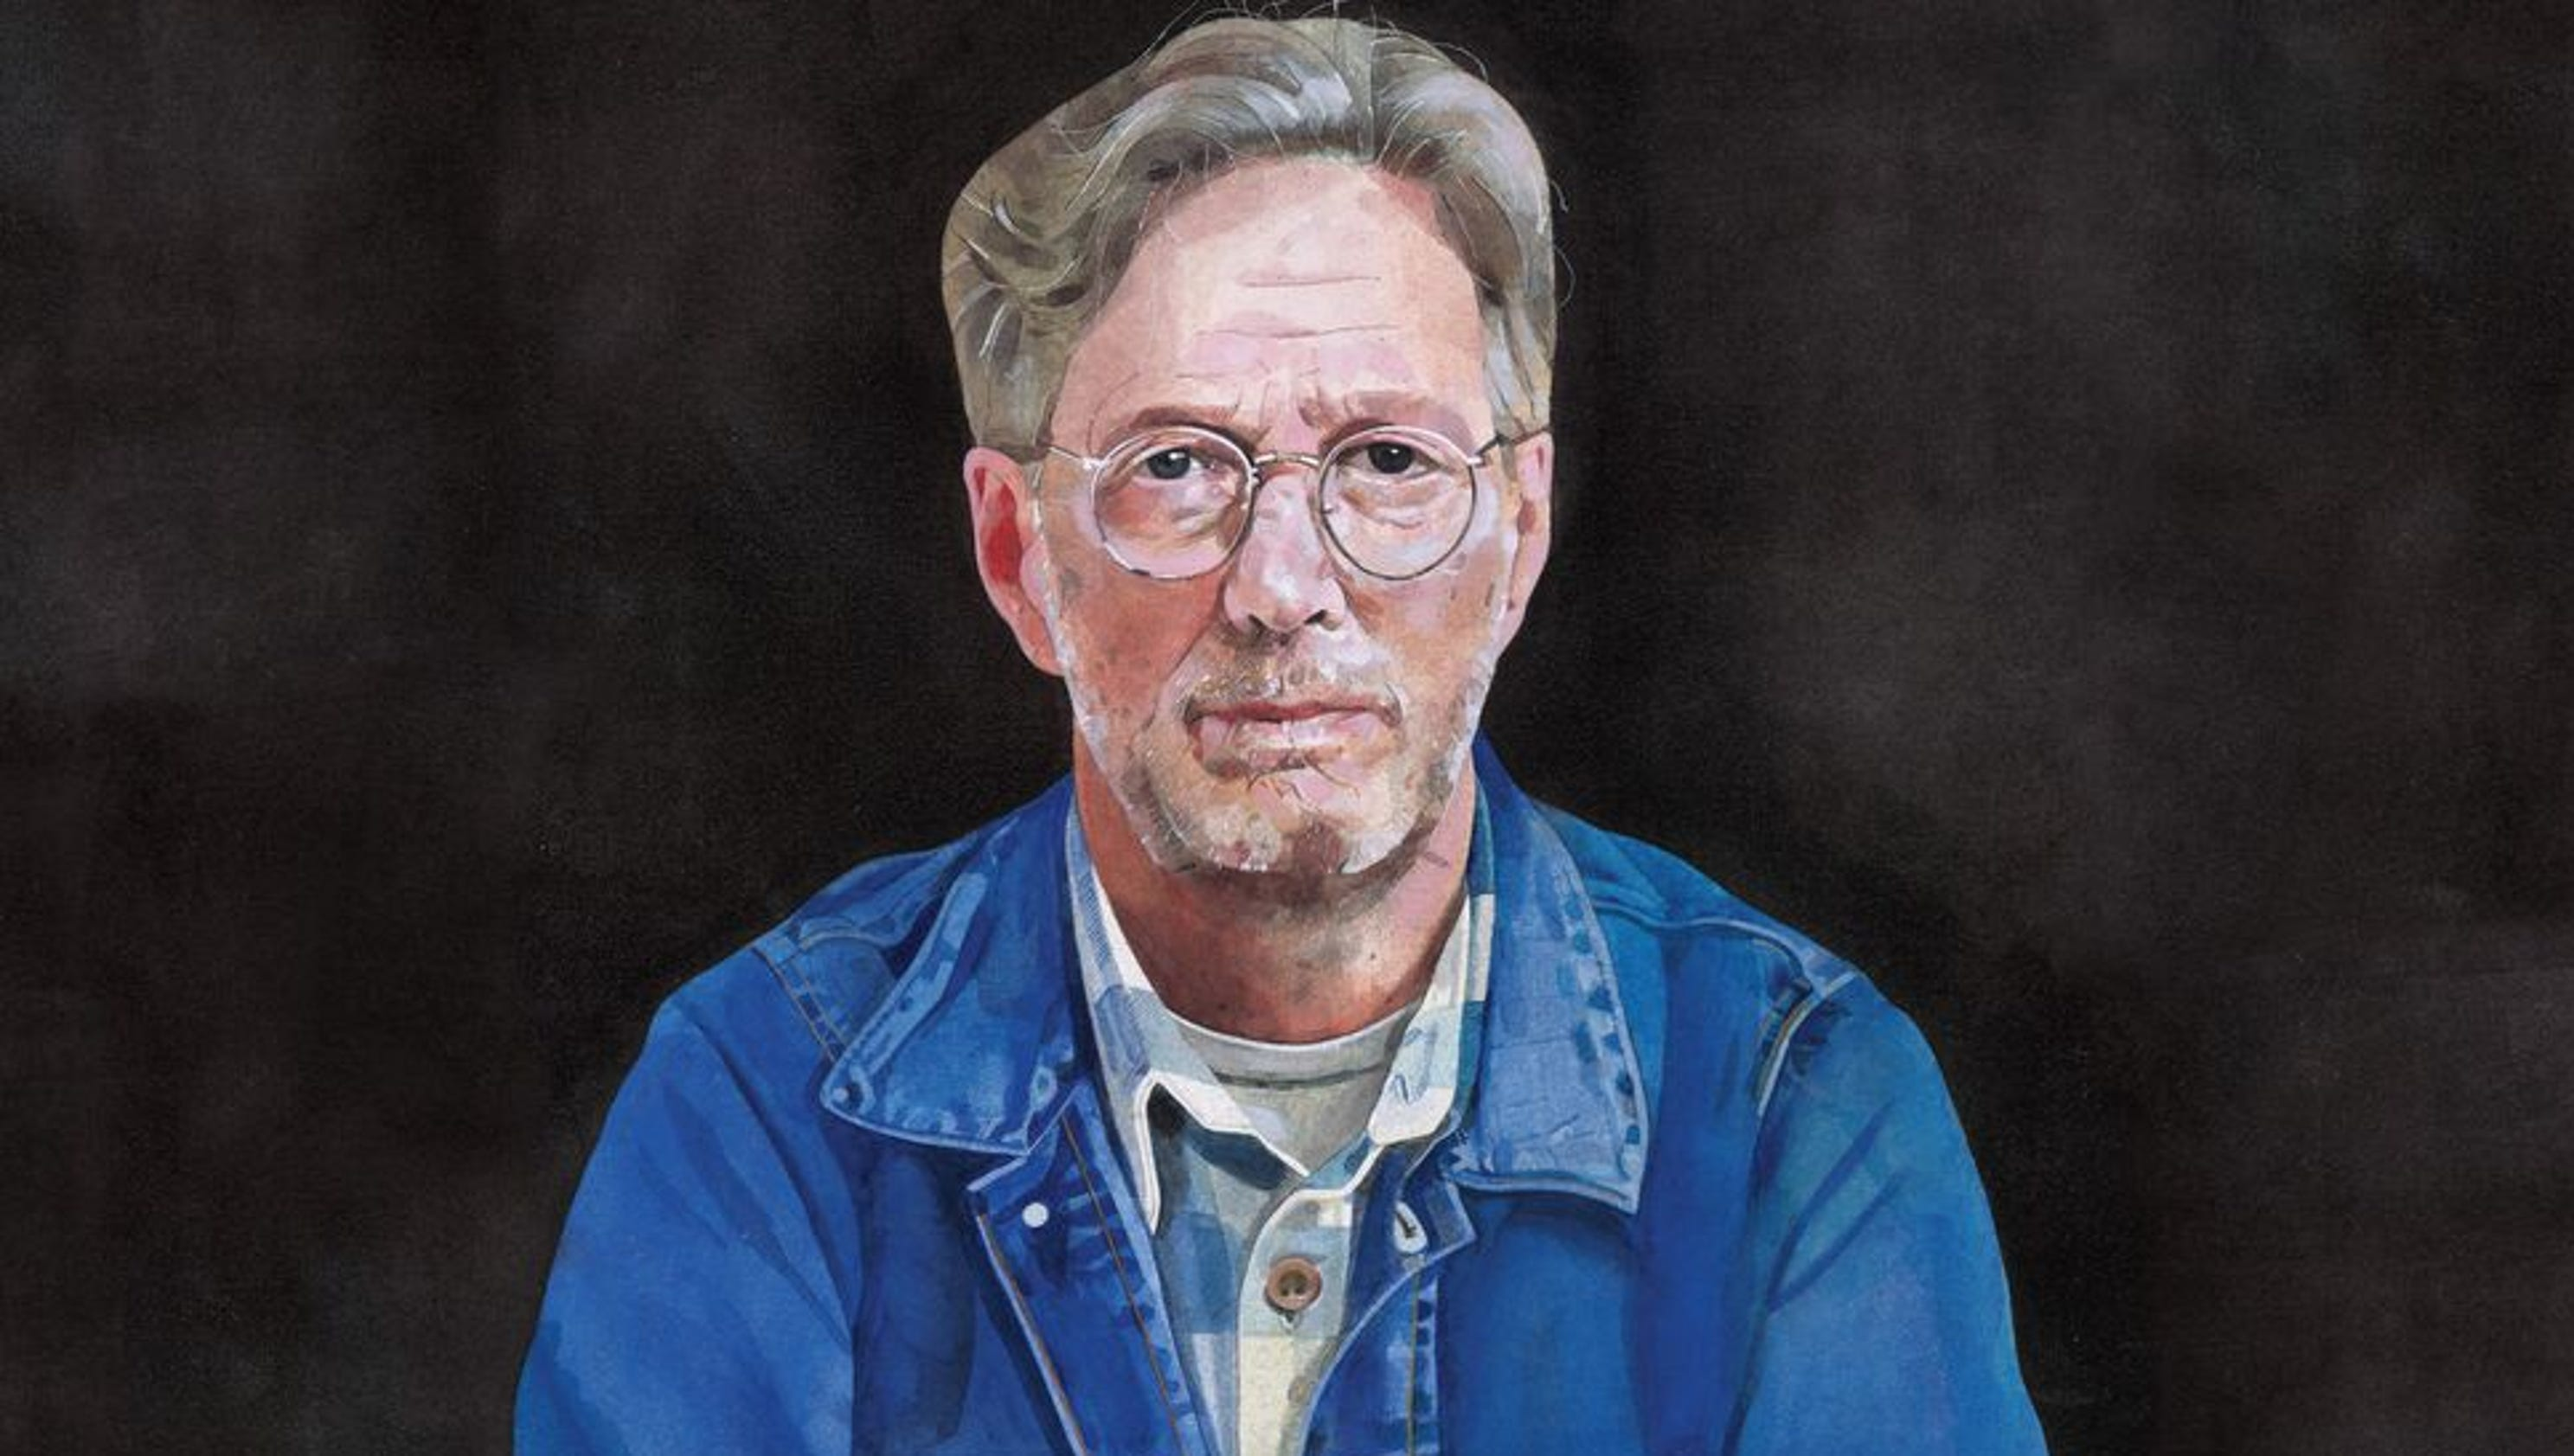 account of the life and musical contributions of eric clapton The 4 1/2-year-old son of the rock guitarist eric clapton was killed yesterday morning when he fell out an open bedroom window on the 53d floor of a manhattan apartment building.